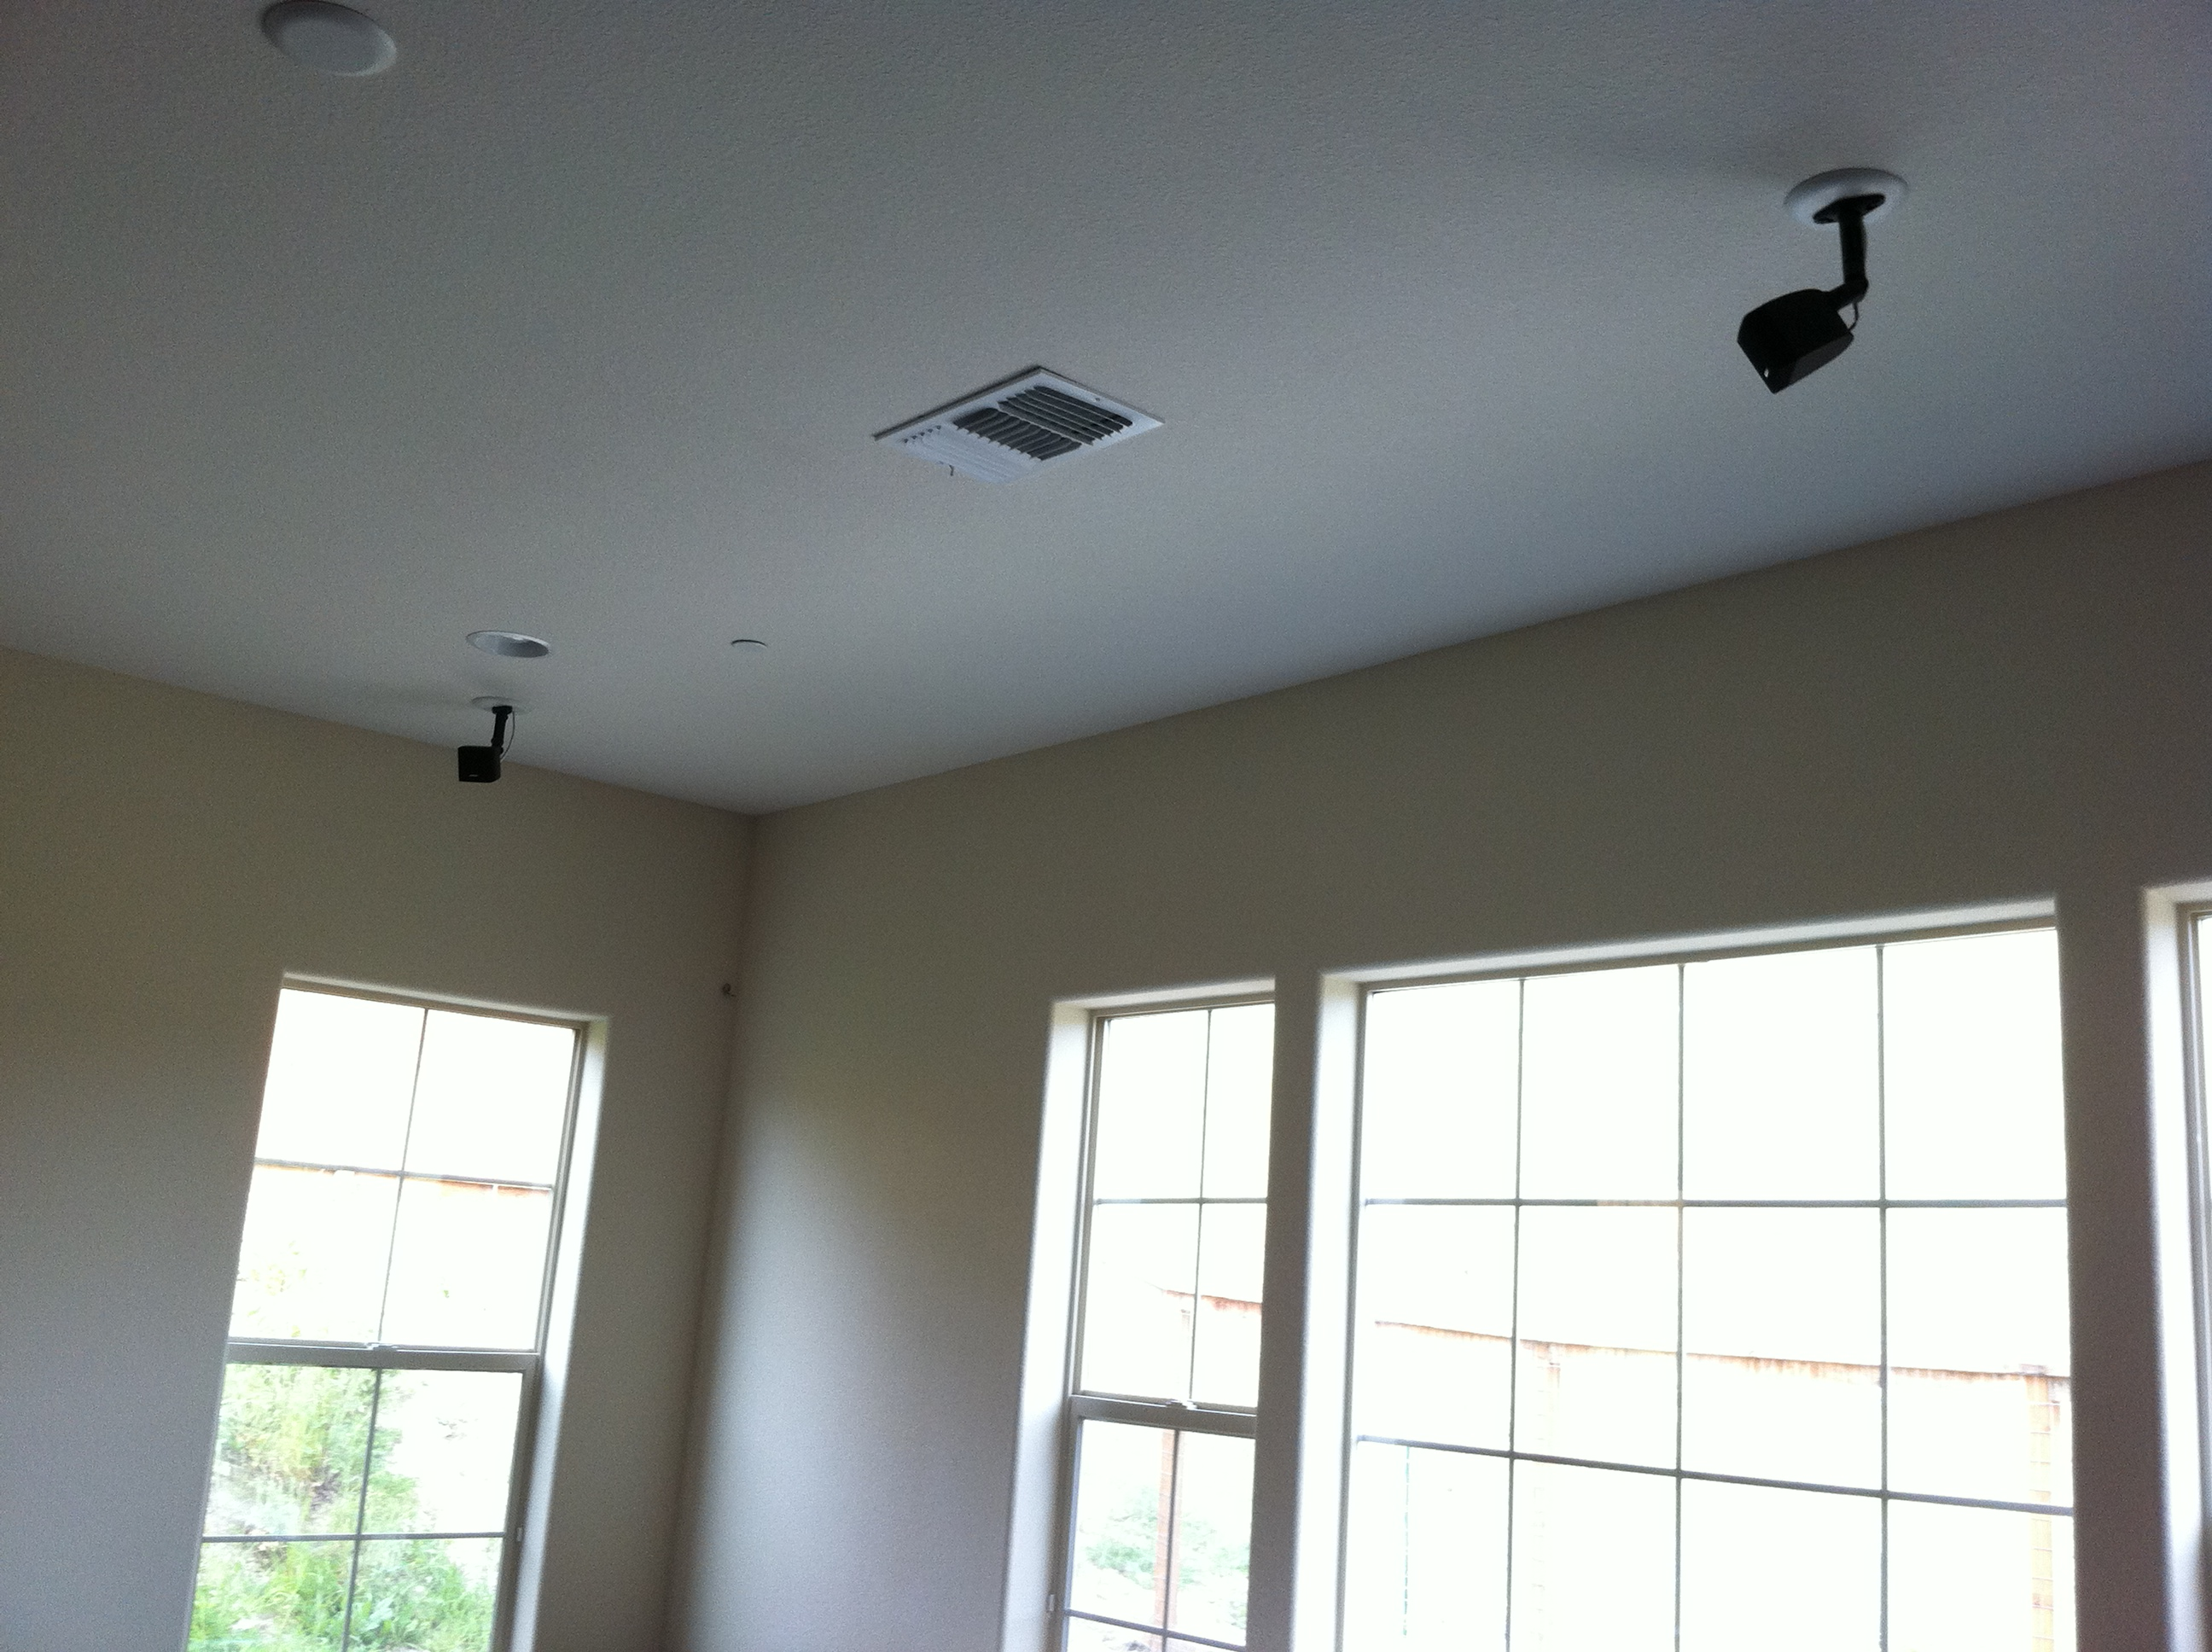 Home Theater Speakers Mw Entertainment Wiring Diagrams For Satellite Bose Lifestyle Rear Installed In Ceiling